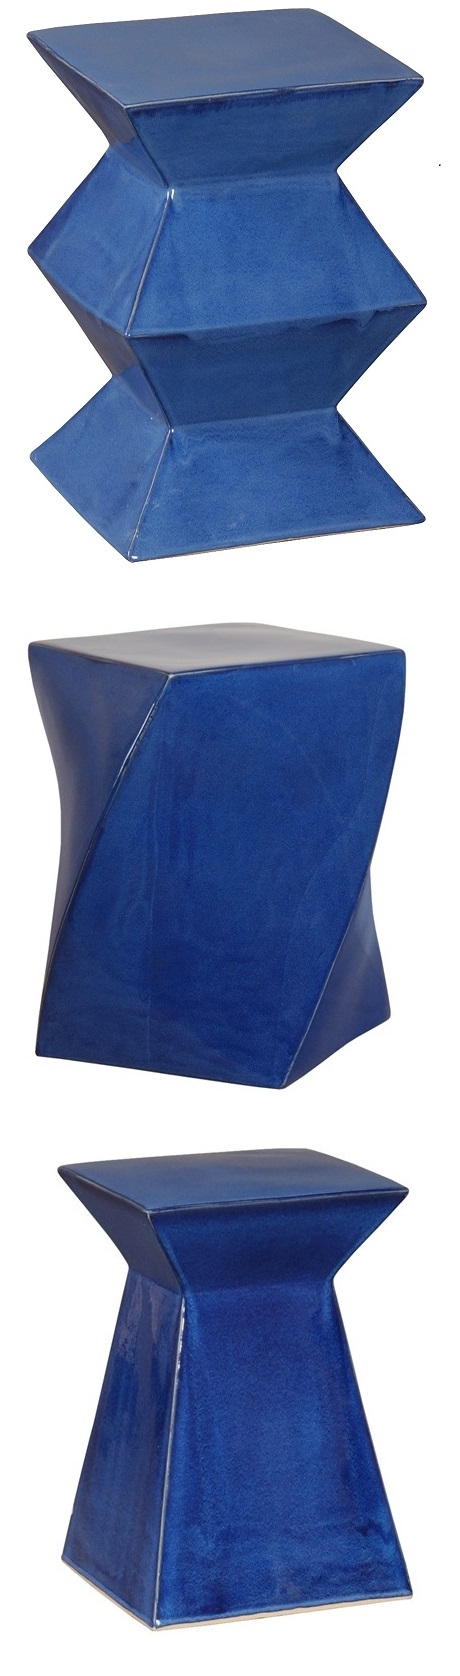 Blue Garden Stool | Blue Ceramic Stools | Blue Porcelain Stool | Blue Ceramic Stool |  sc 1 st  Pinterest & Blue Garden Stool | Blue Ceramic Stools | Blue Porcelain Stool ... islam-shia.org